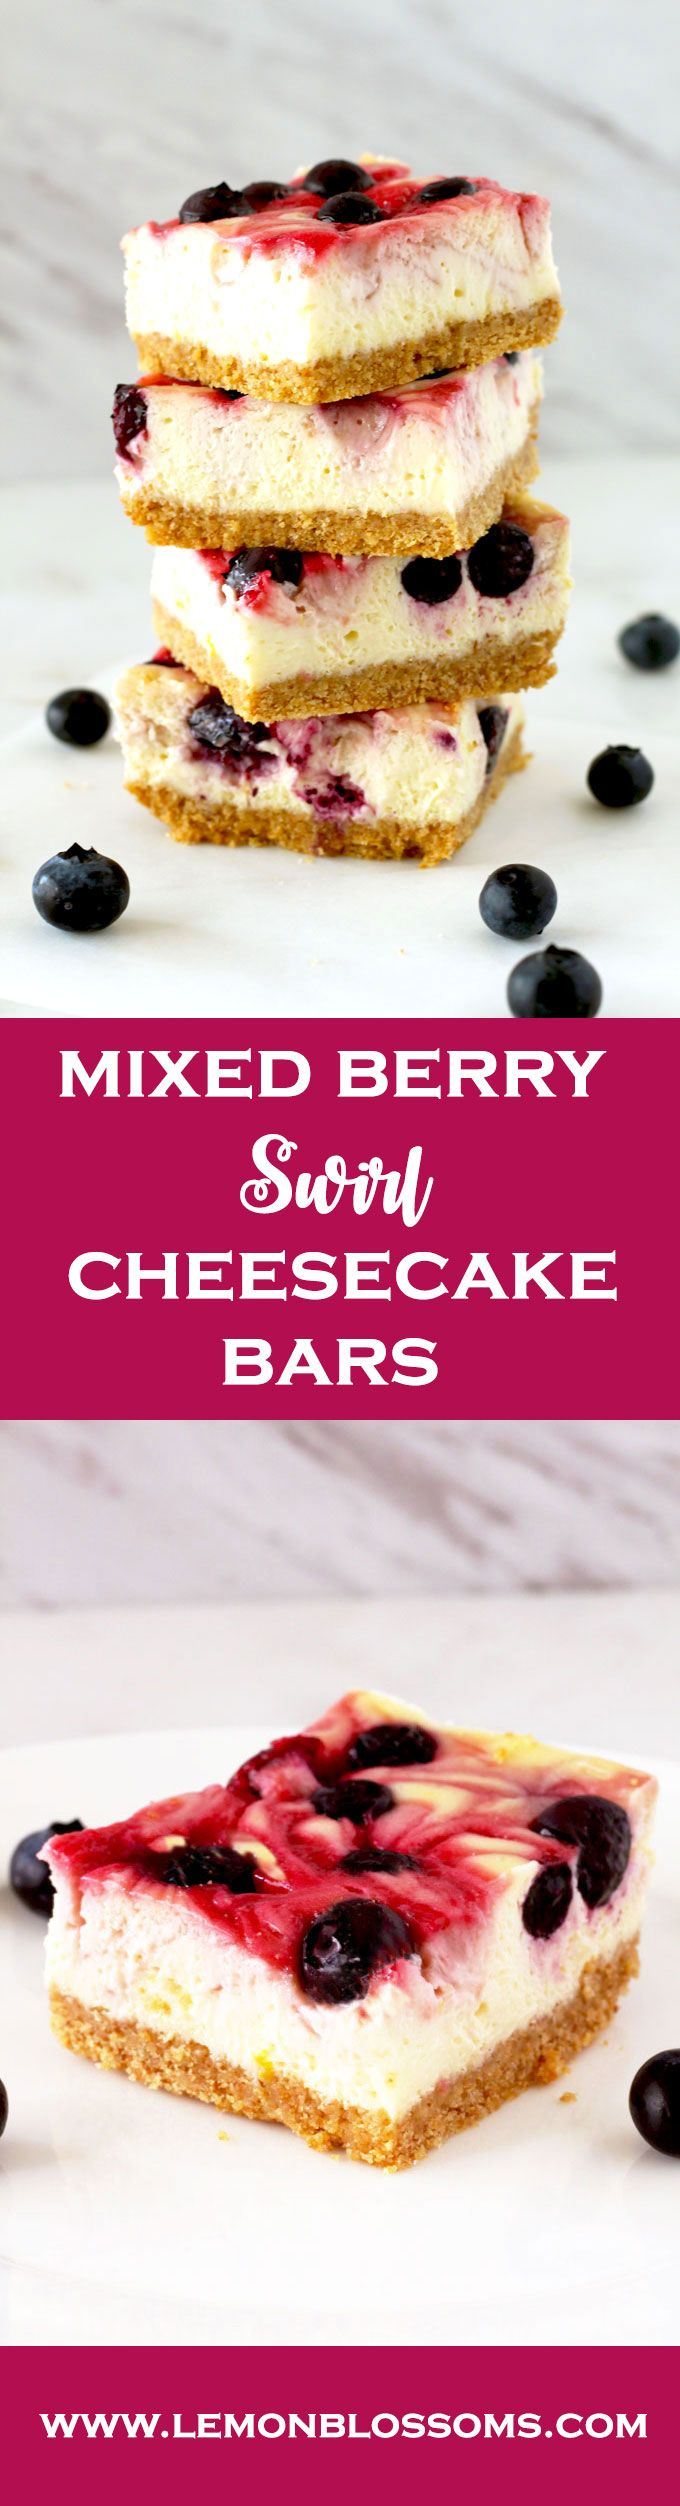 Creamy, smooth and delicious. These Mixed Berry Swirl Cheesecake Bars are studde…